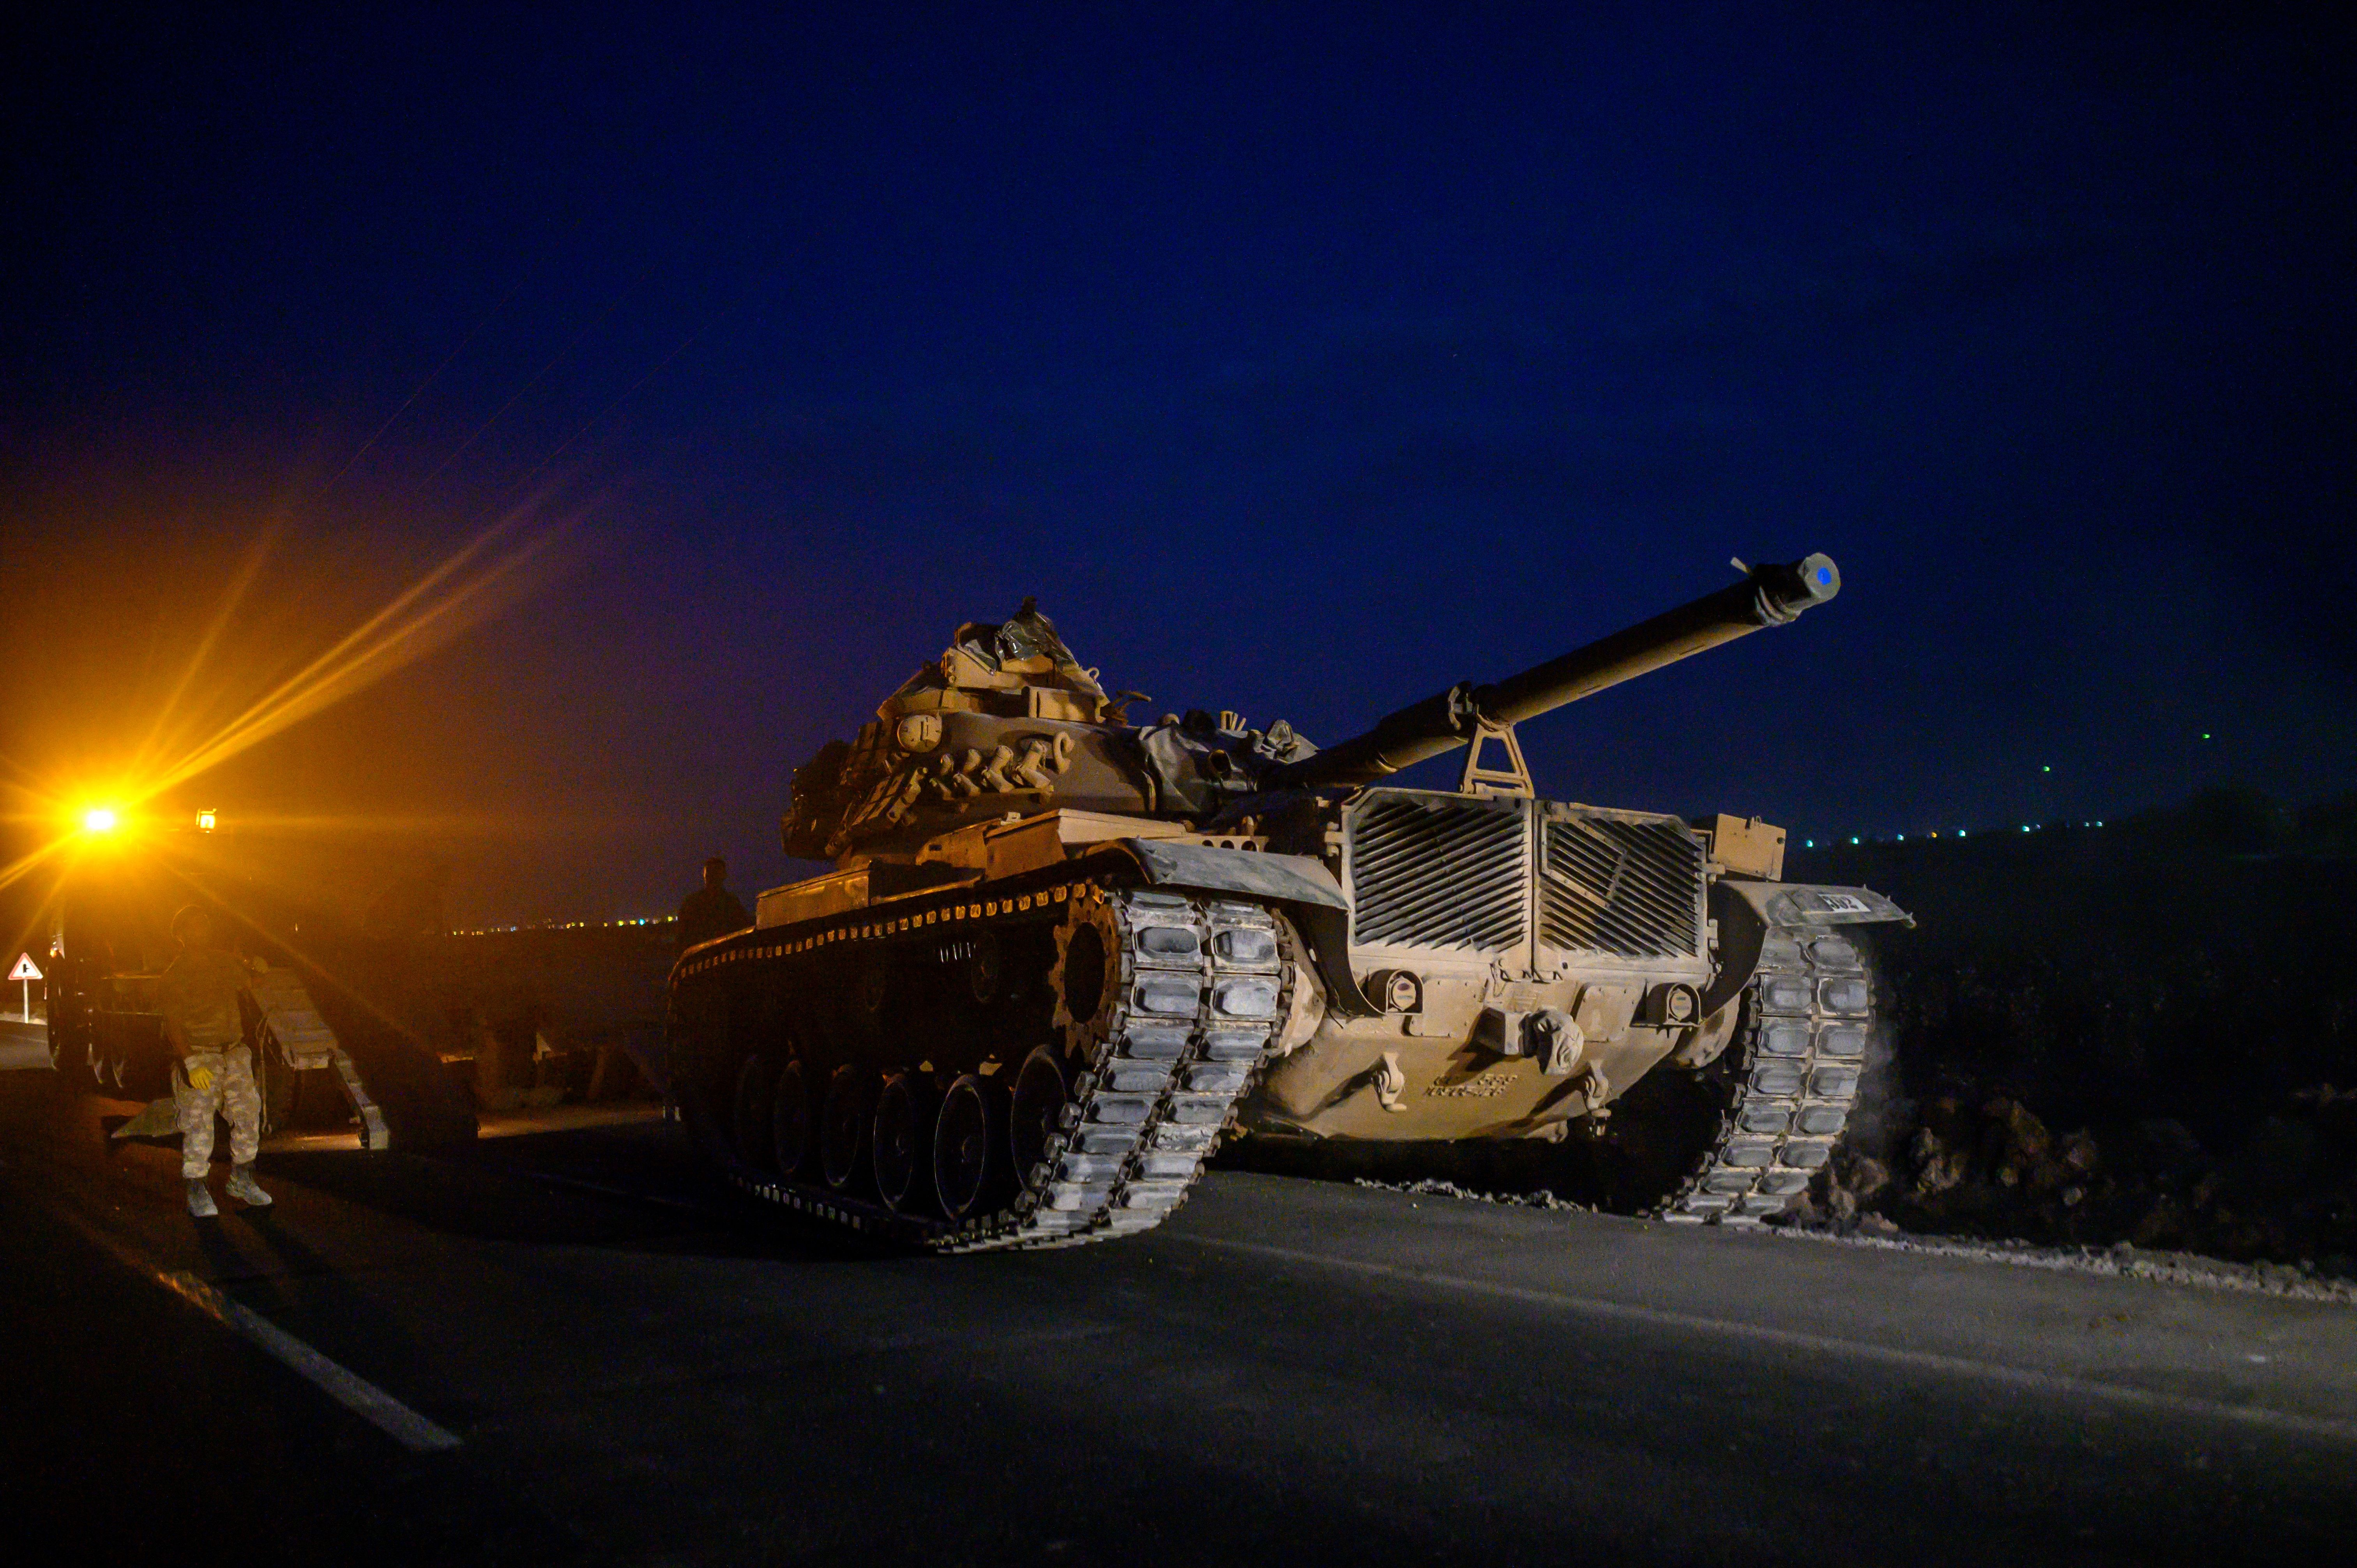 "A Turkish army's tank drives towards the border with Syria near Akcakale in Sanliurfa province on October 8, 2019. - Turkey said on October 8, 2019, it was ready for an offensive into northern Syria, while President Donald Trump insisted the United States had not abandoned its Kurdish allies who would be targeted in the assault. Trump has blown hot and cold since a surprise announcement two days before that Washington was pulling back 50 to 100 ""special operators"" from Syria's northern frontier. (Photo by BULENT KILIC / AFP) (Photo by BULENT KILIC/AFP via Getty Images)"